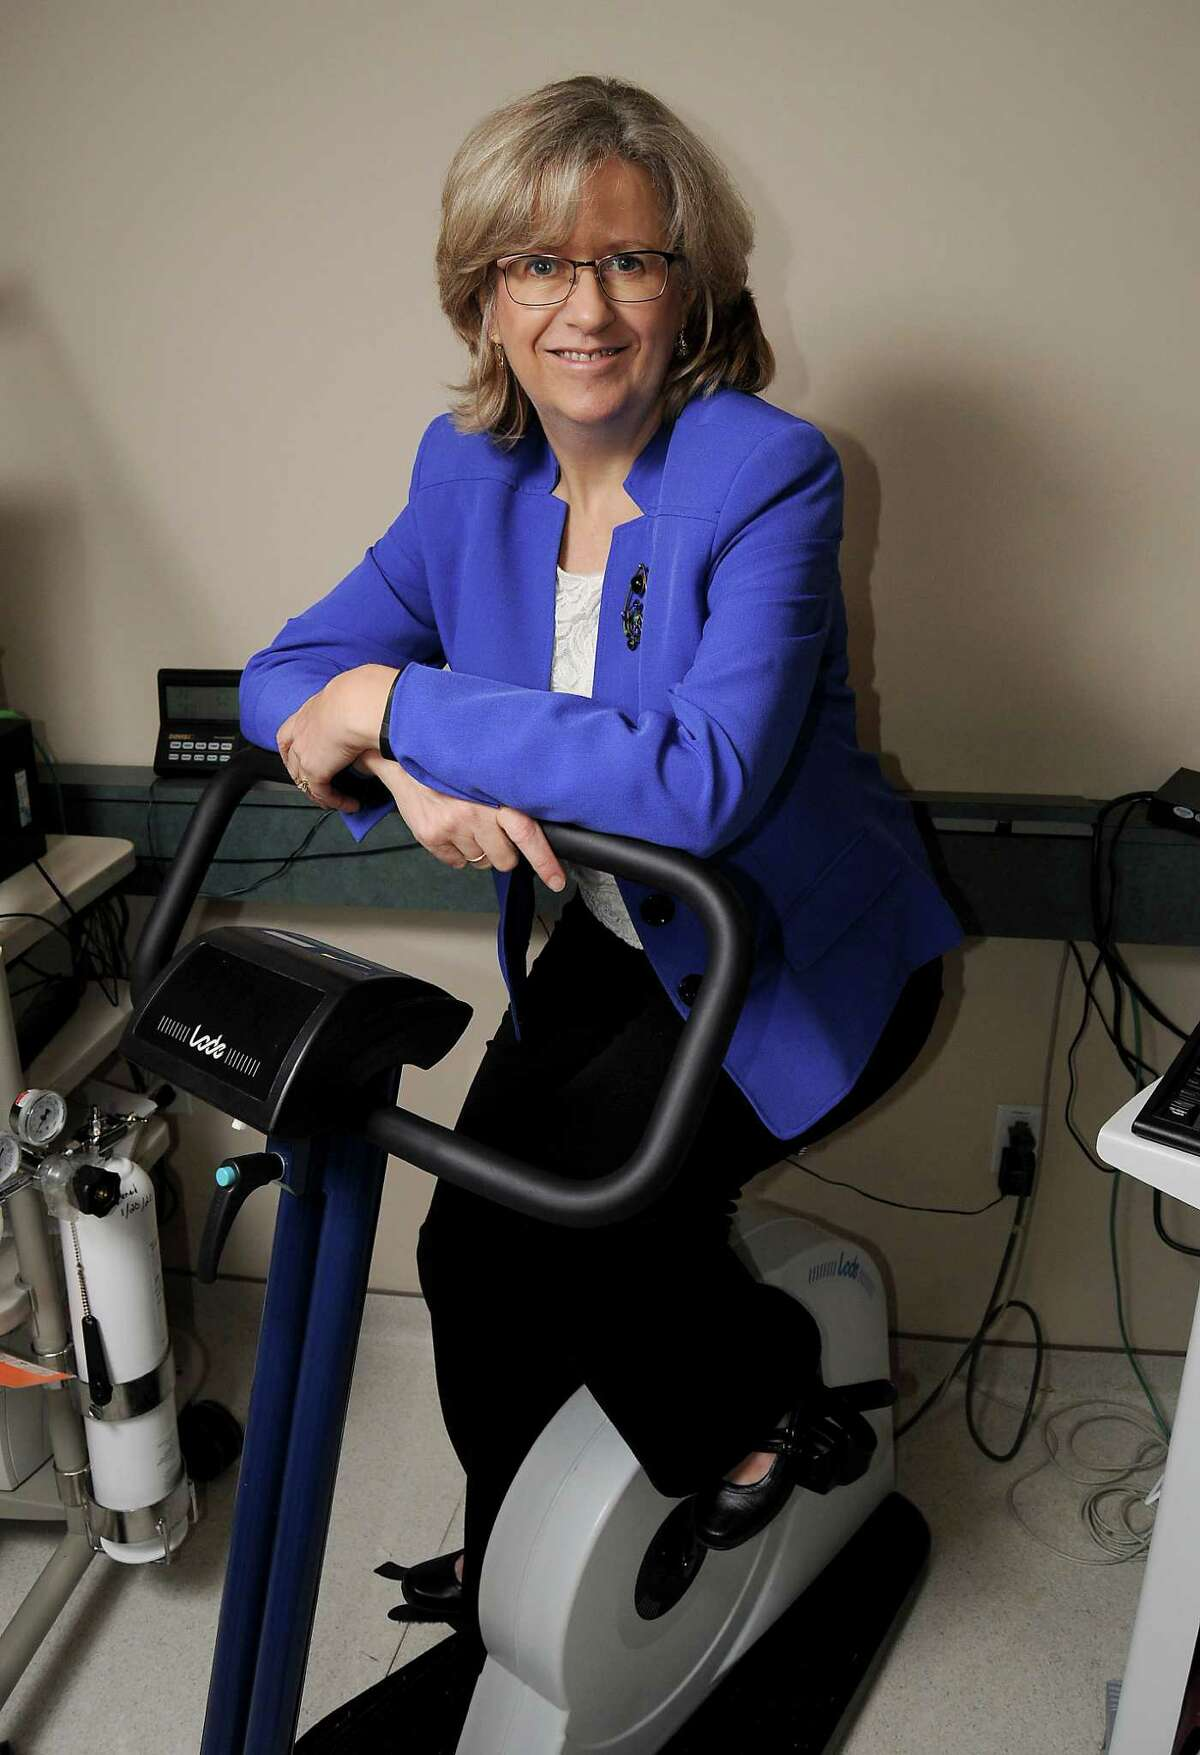 Dr. Karen Basen-Engquist with some exercise equipment at the M.D. Anderson Cancer Prevention Center Tuesday Sept. 8,2015.(Dave Rossman photo)